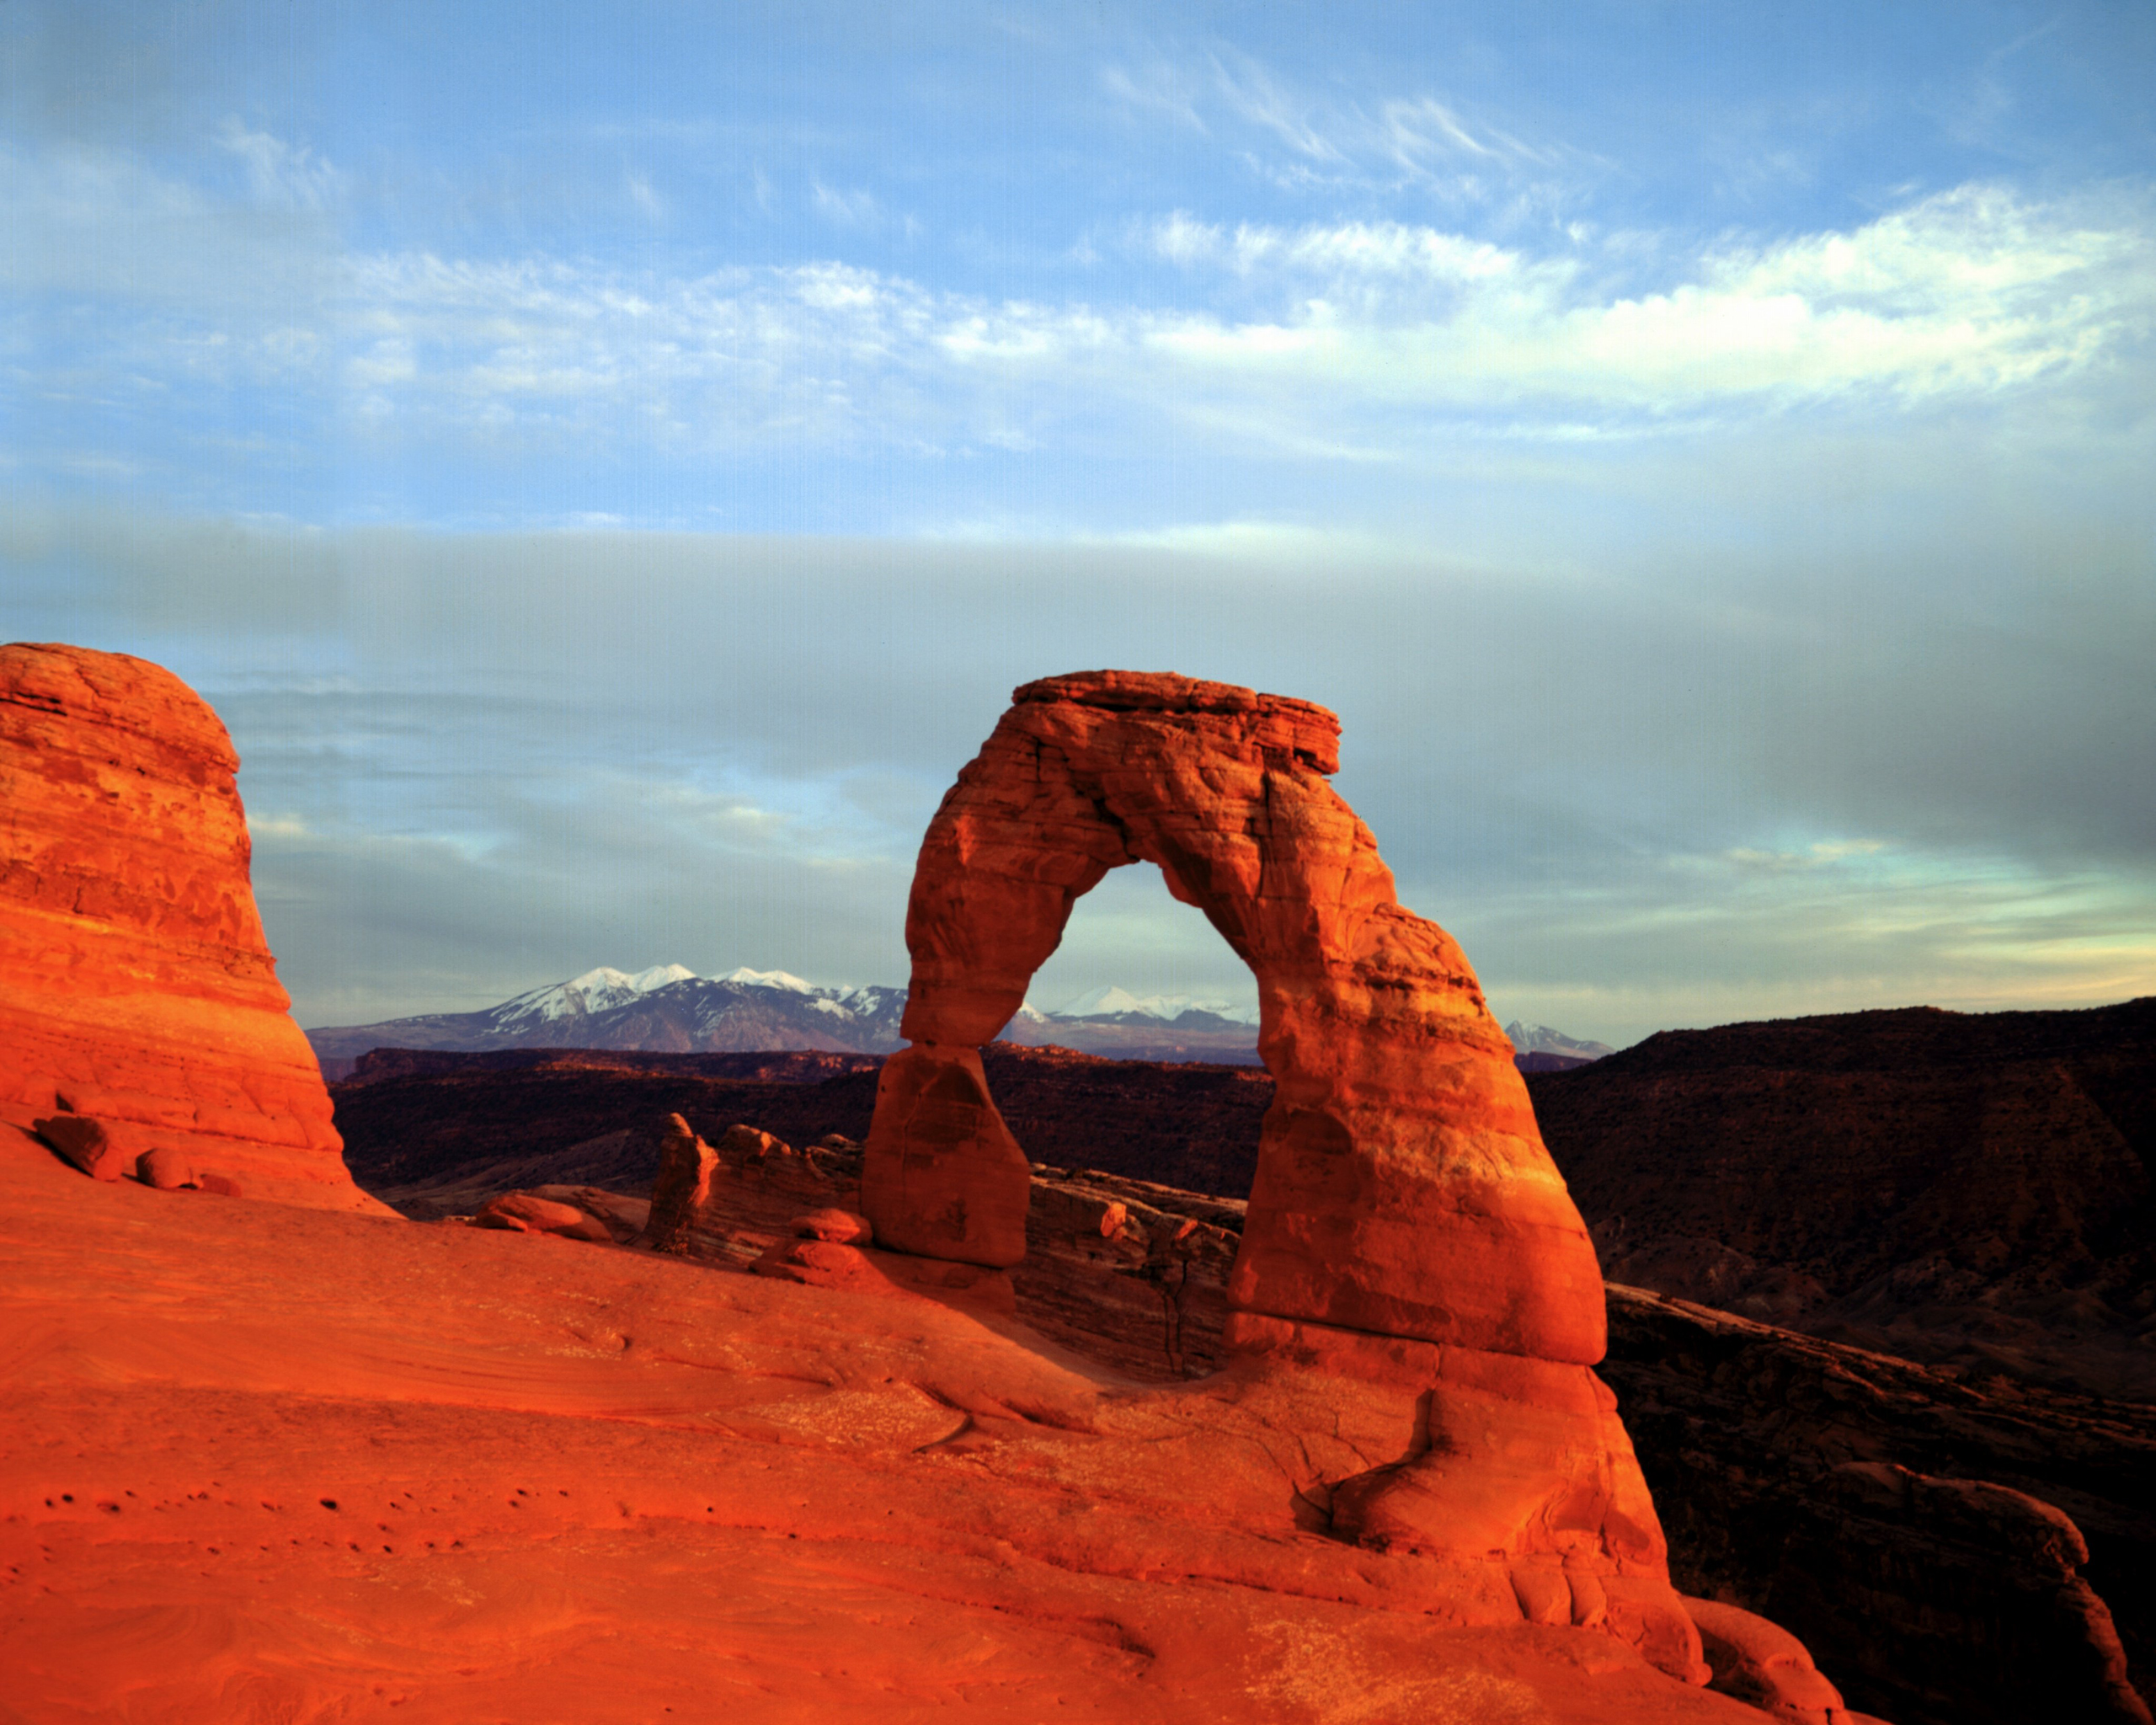 Arches National Park in Utah covers 76,679 acres